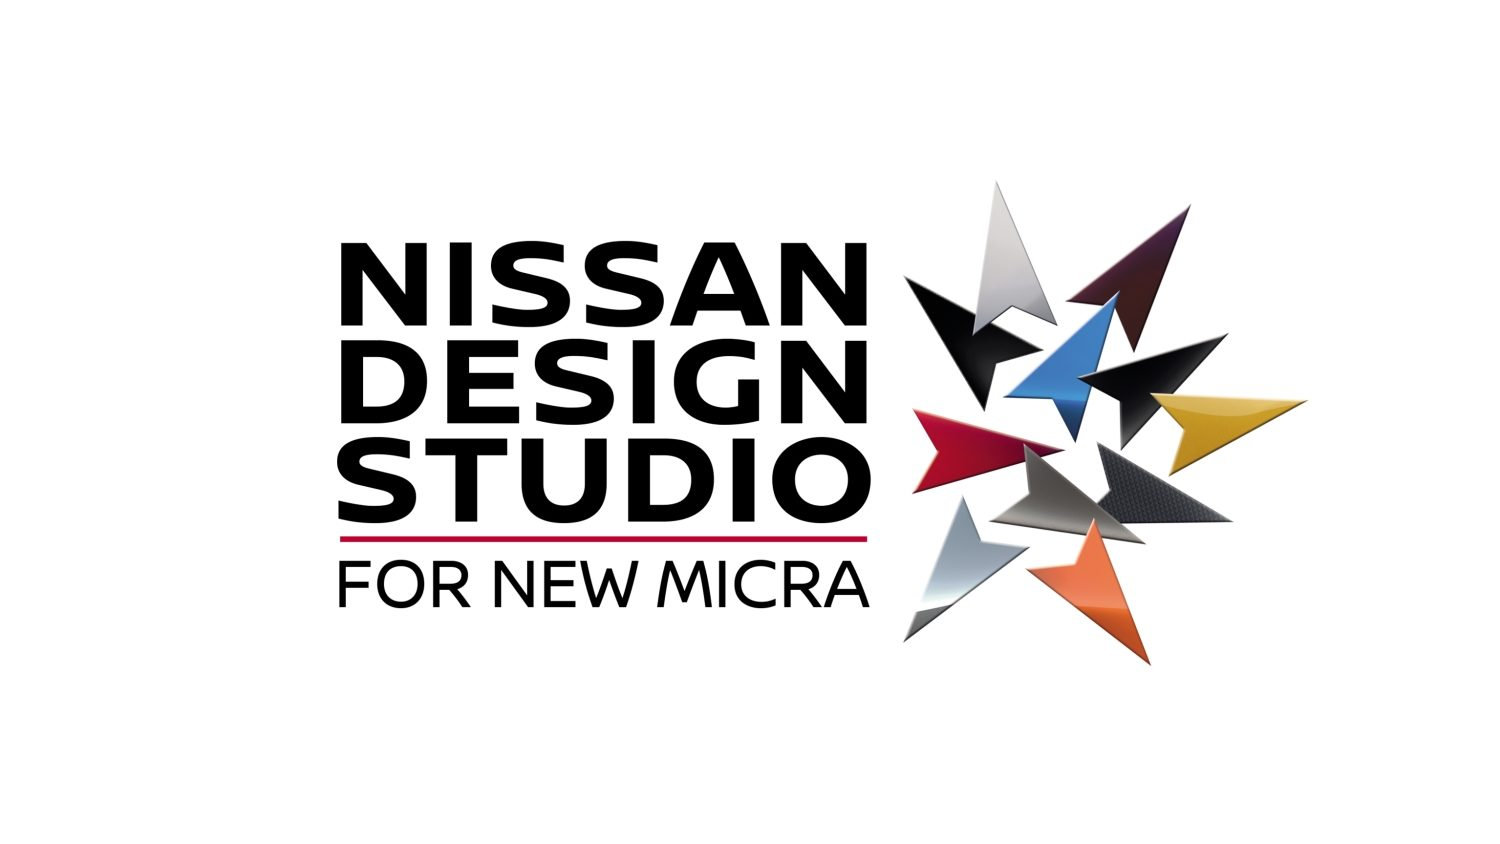 Nissan Design Studio